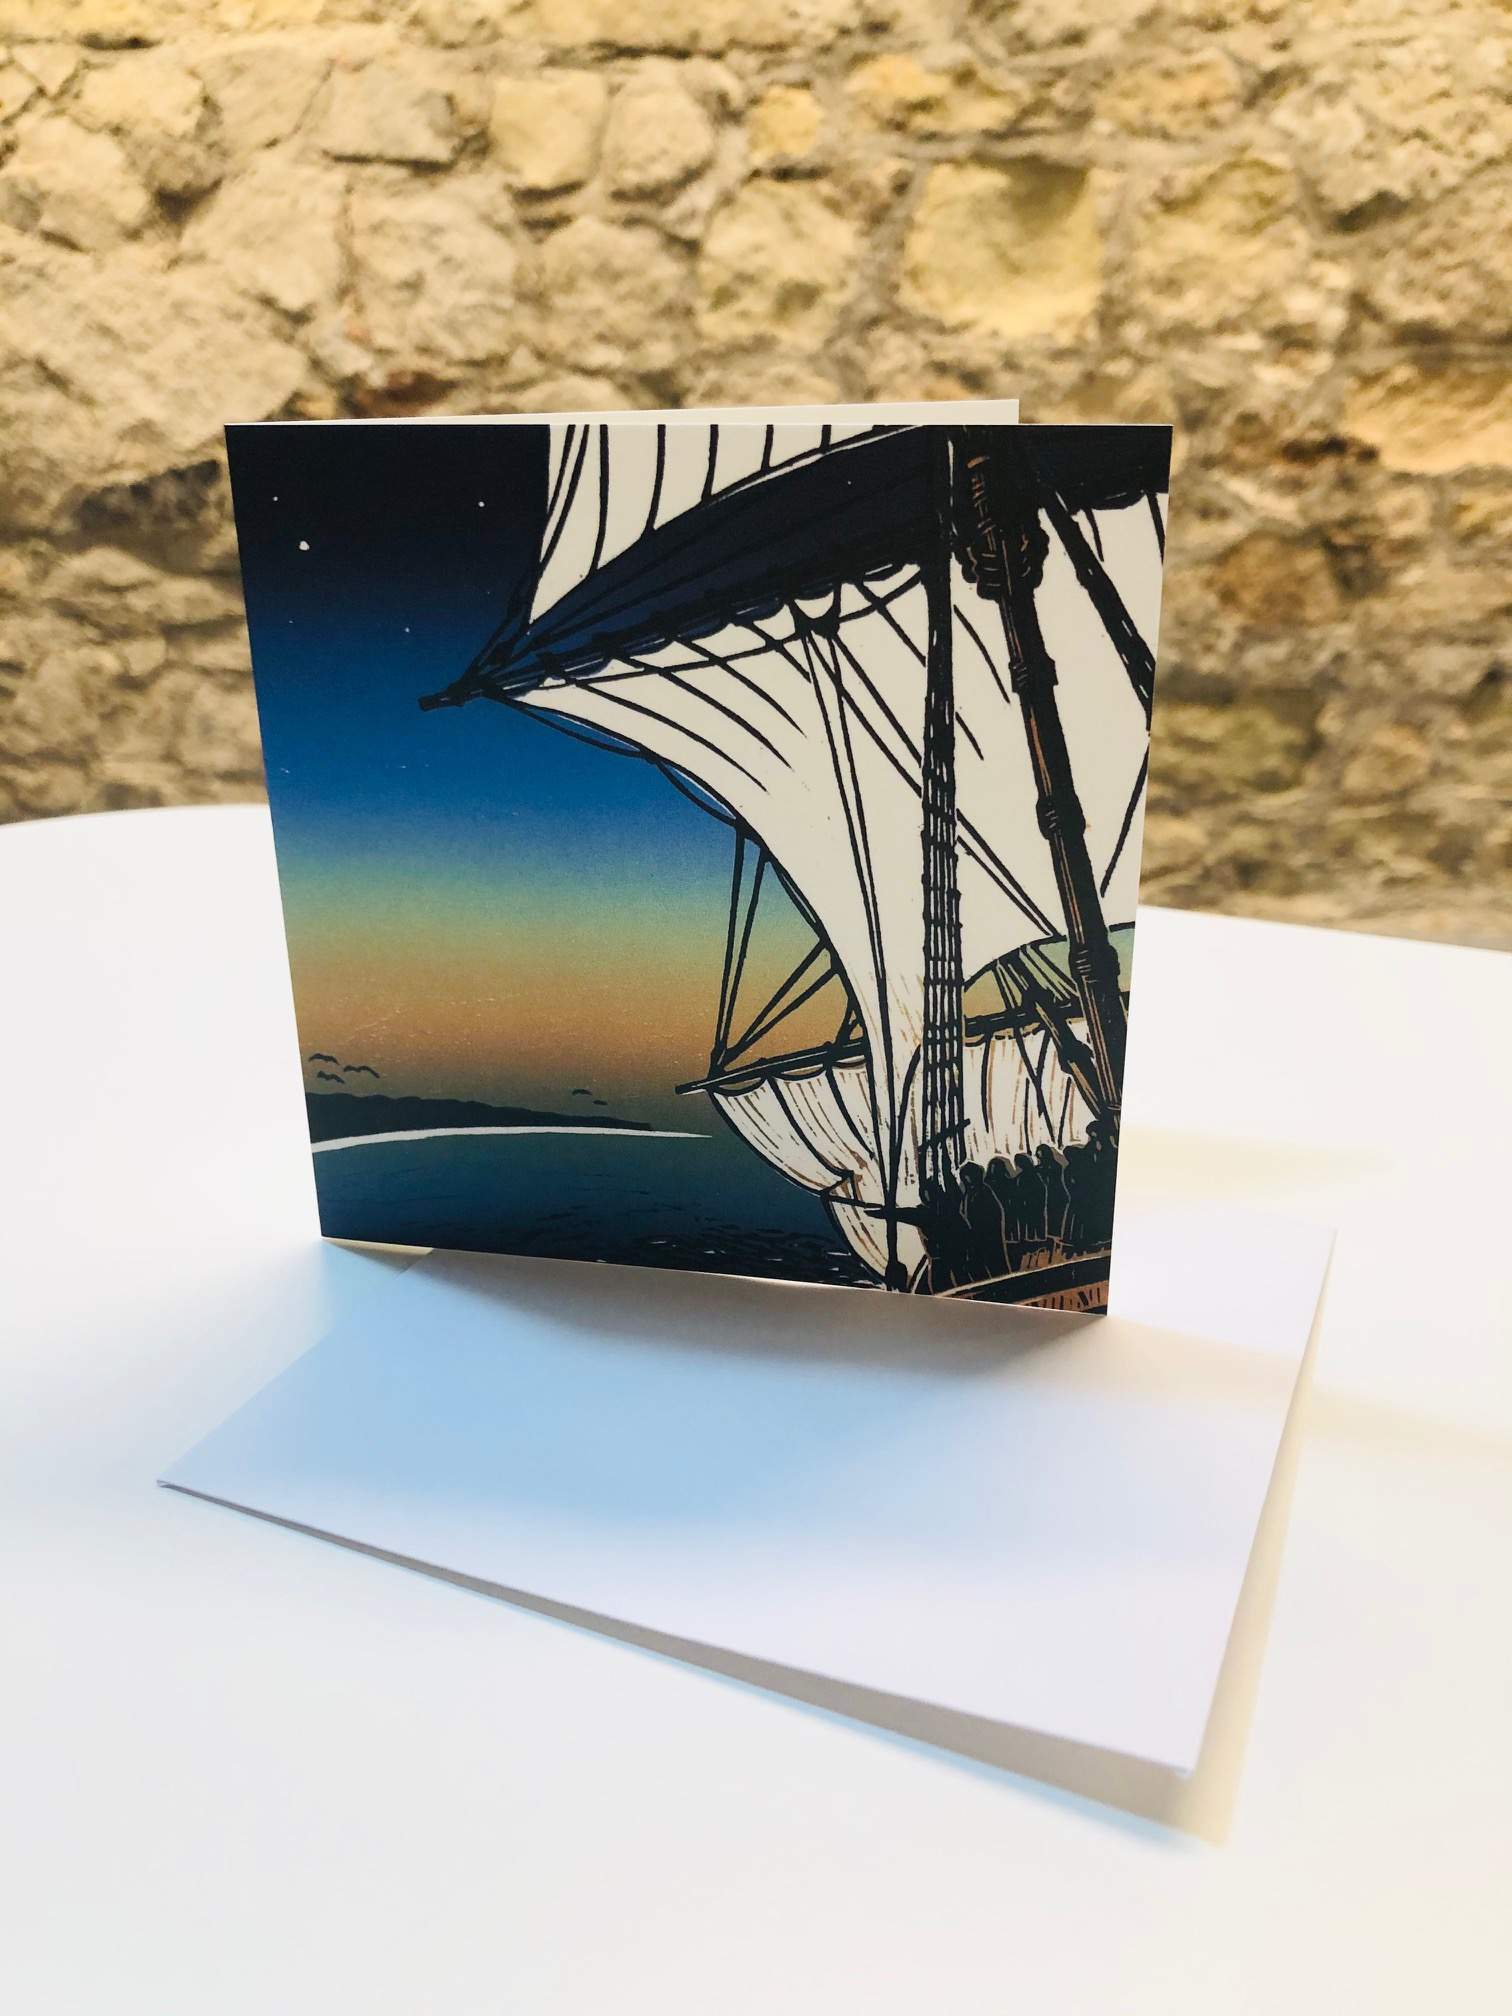 'Downwind off Cape Cod' Greetings Card by Kay Brown